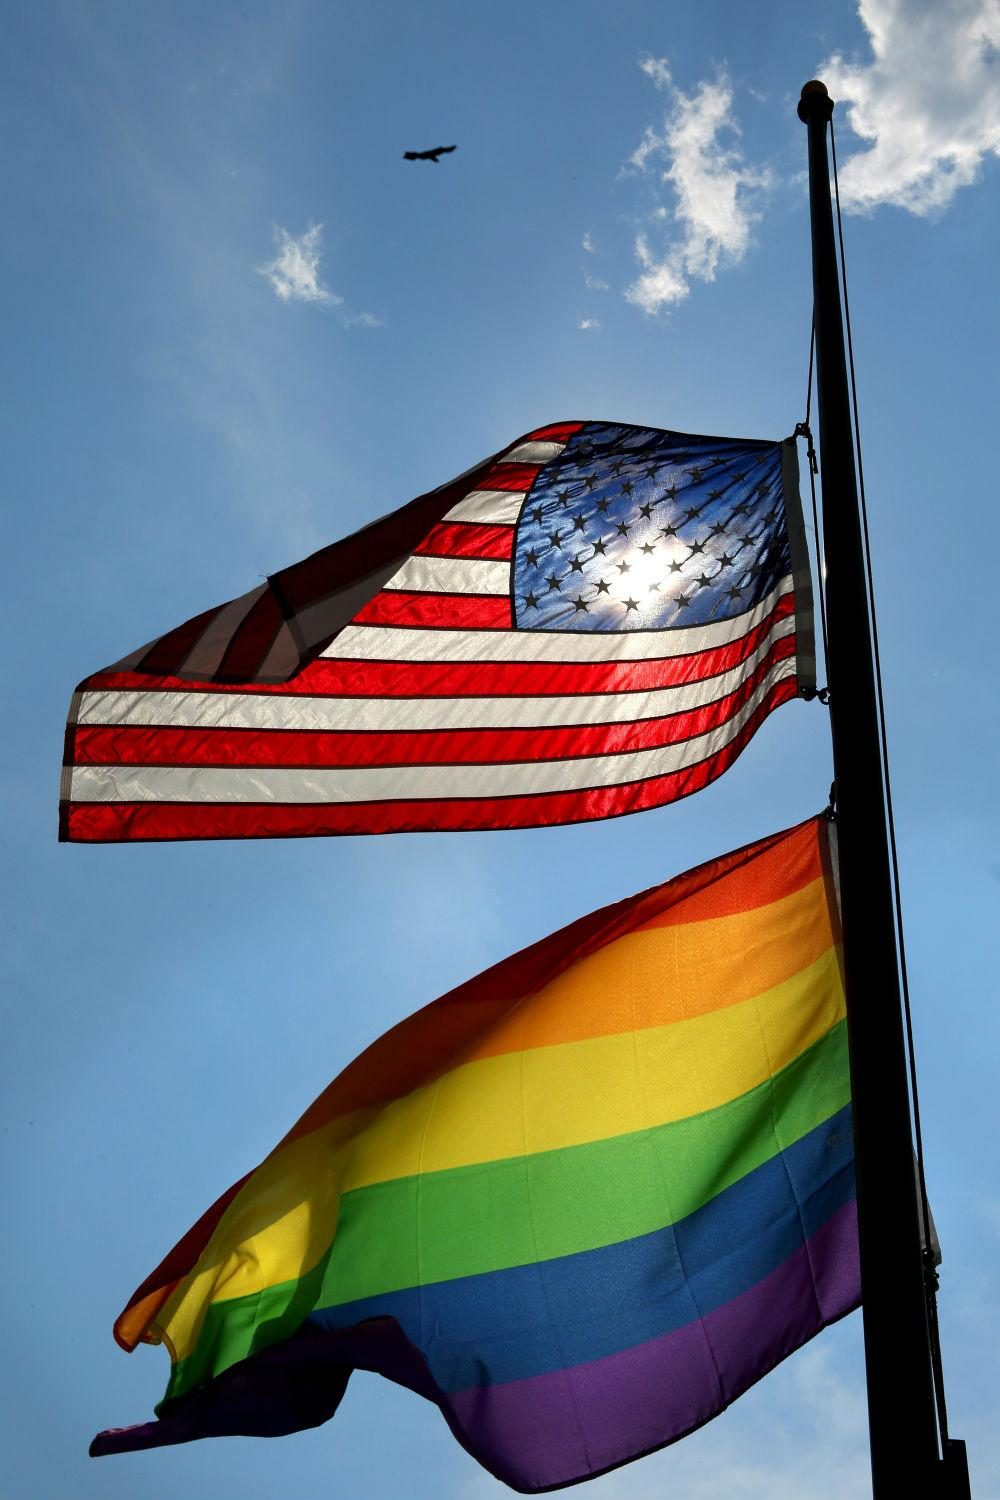 A pride flag flies alongside an American flag.